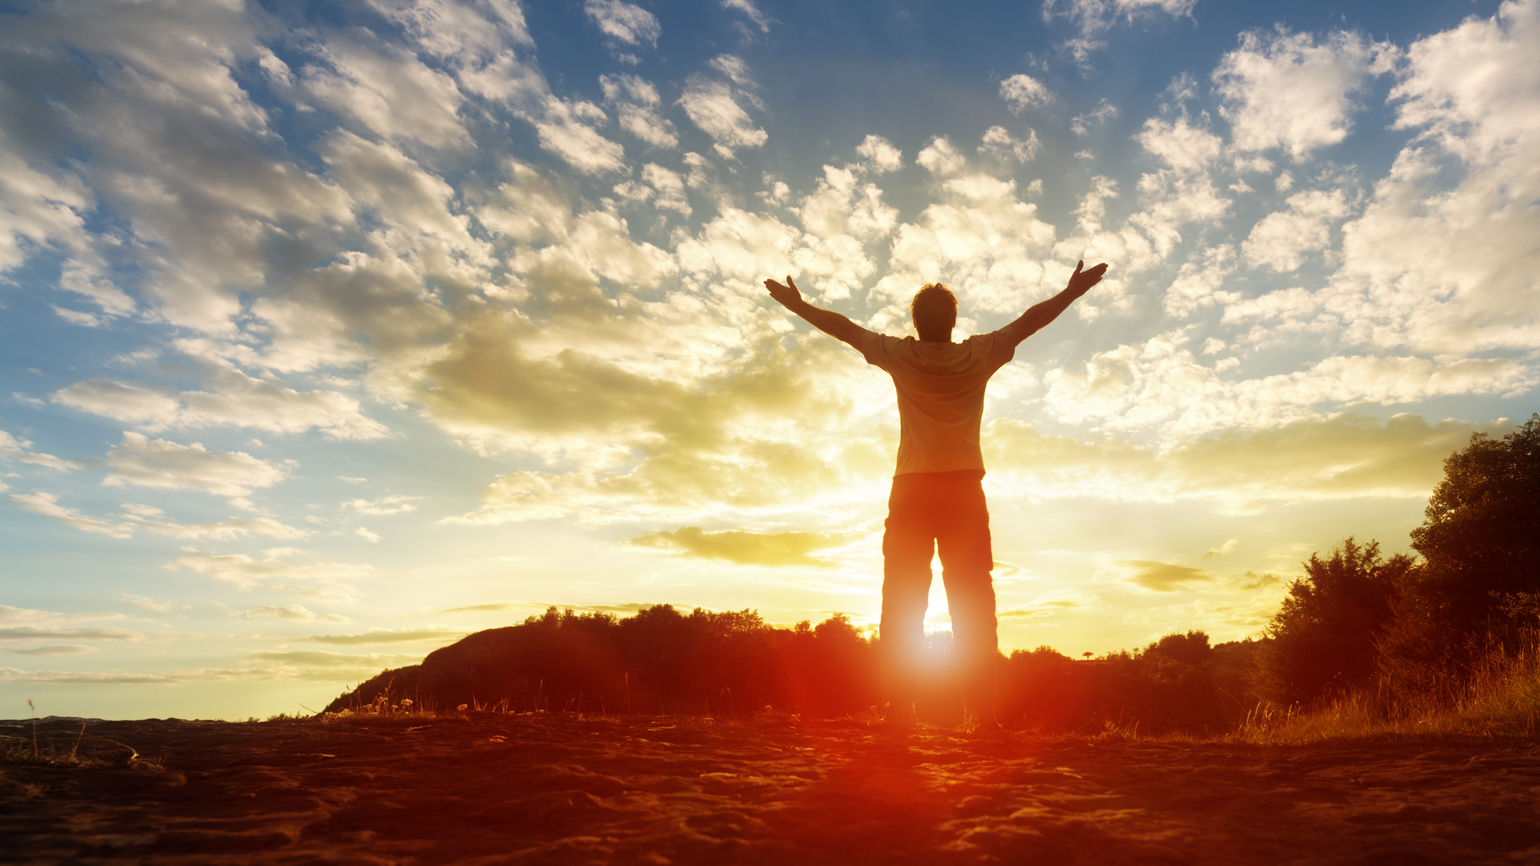 A man greets the sunrise, his arms outstretched